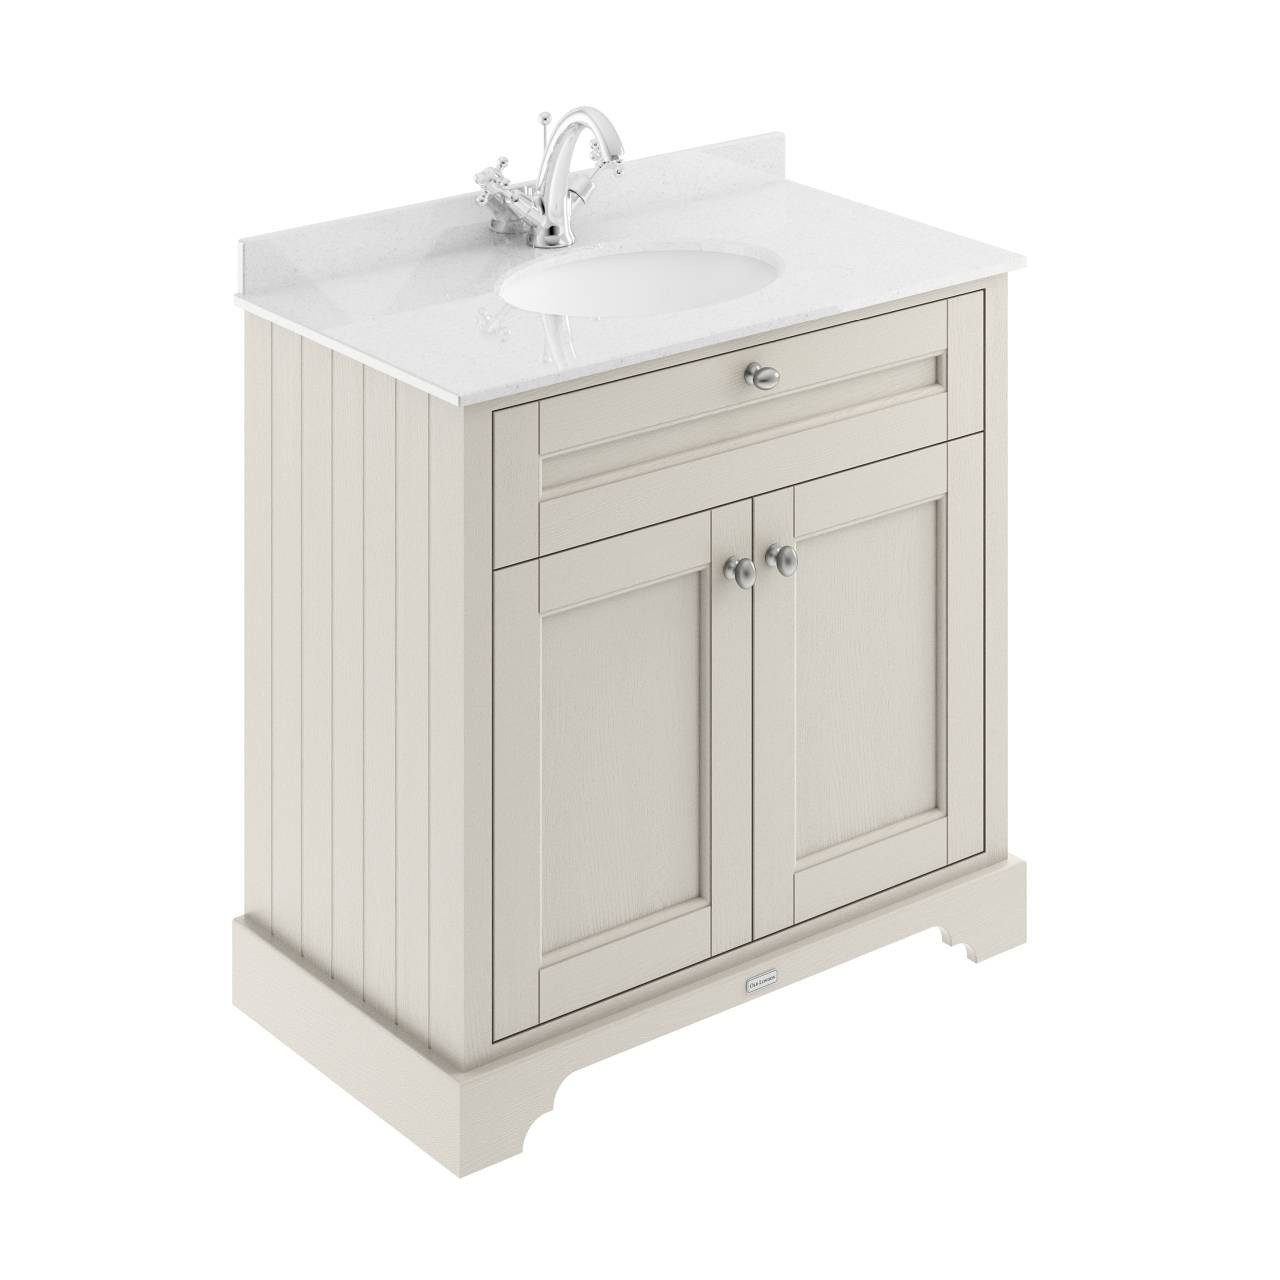 Old London Timeless Sand 800mm 2 Door Vanity Unit With White Marble Top And Basin With 1 Tap Hole Lof428